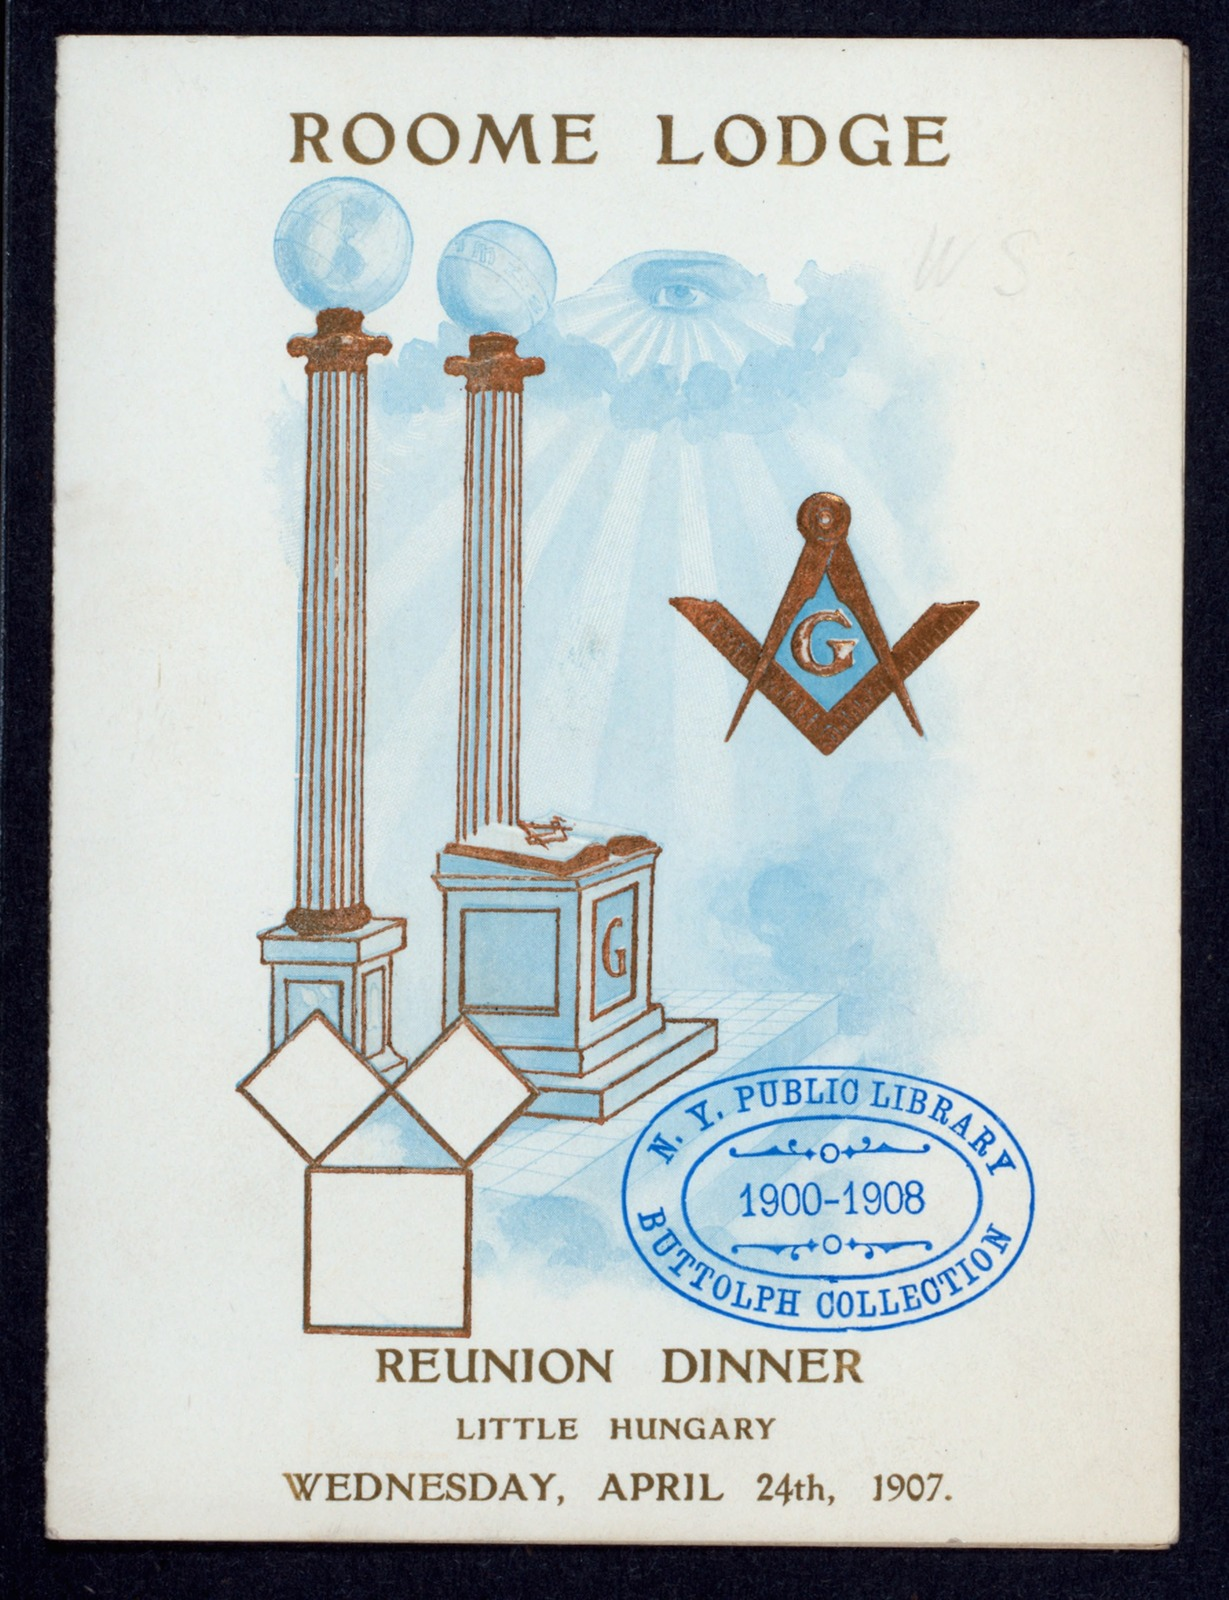 """REUNION DINNER [held by] ROOME LODGE [at] """"LITTLE HUNGARY, (?)"""" (REST;)"""